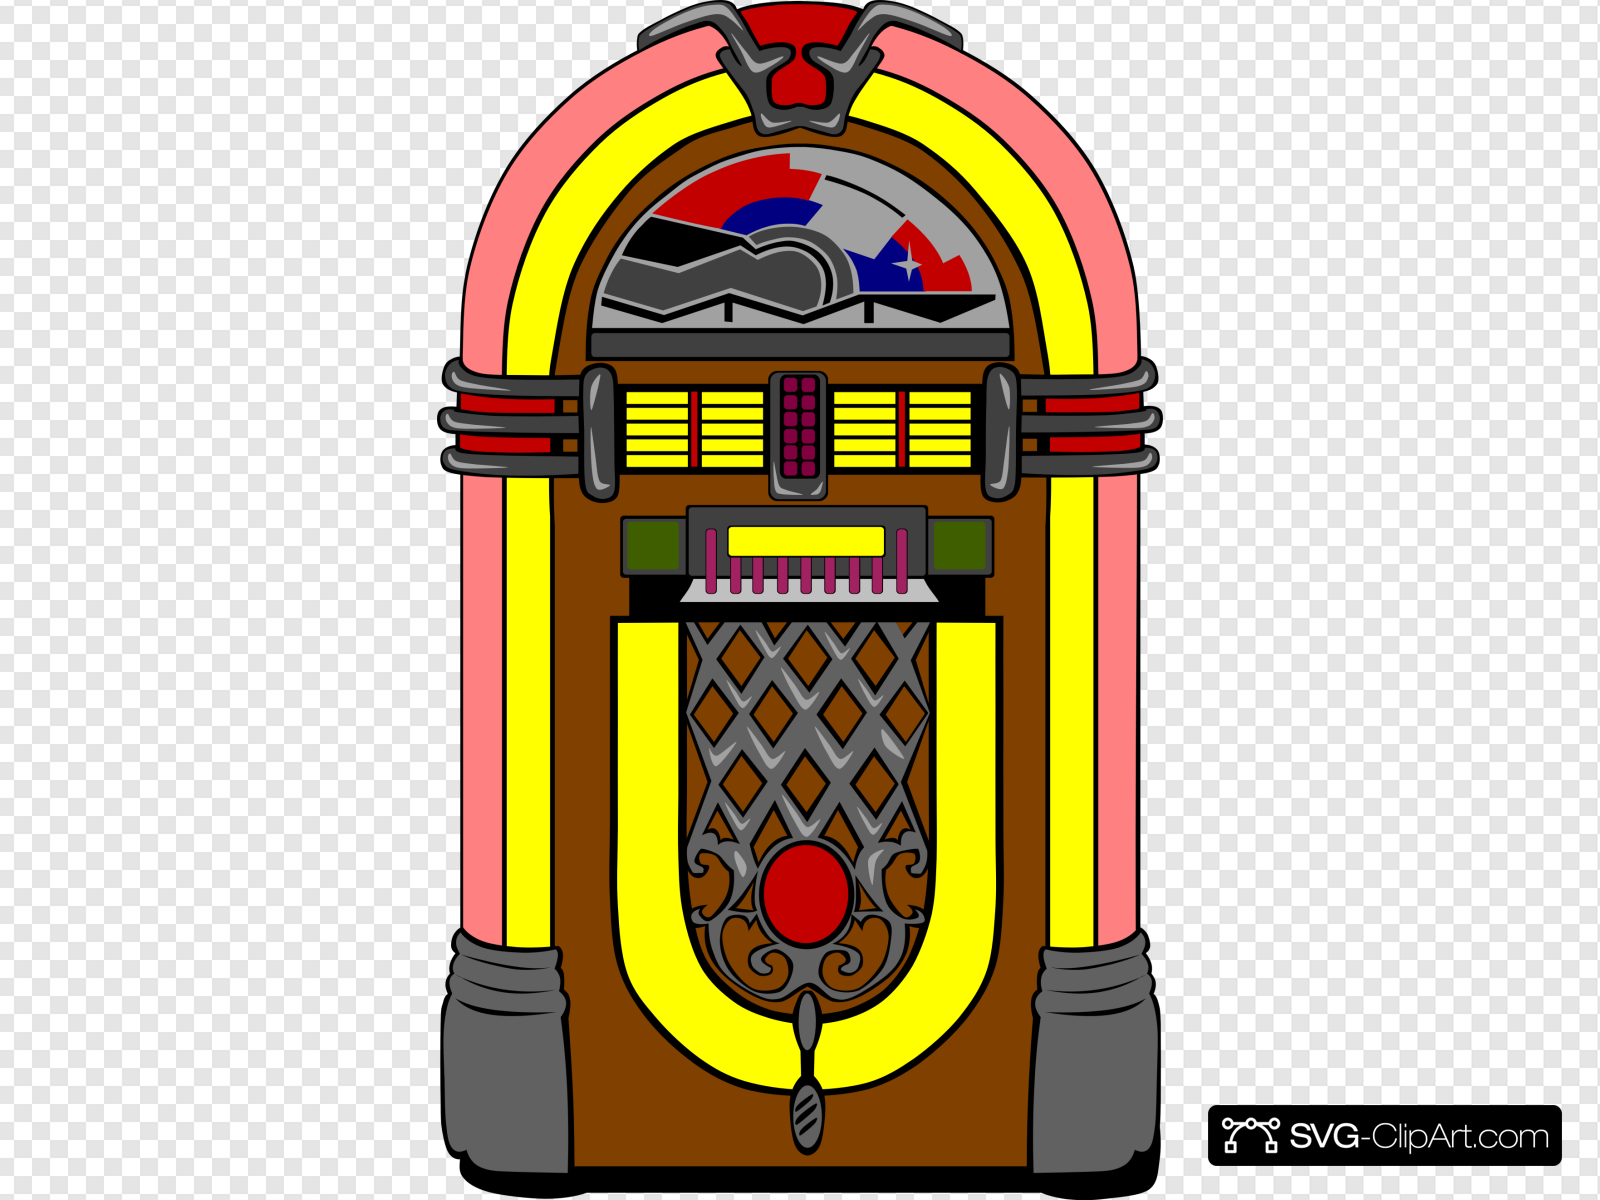 Fifties Jukebox 3 Clip art, Icon and SVG.